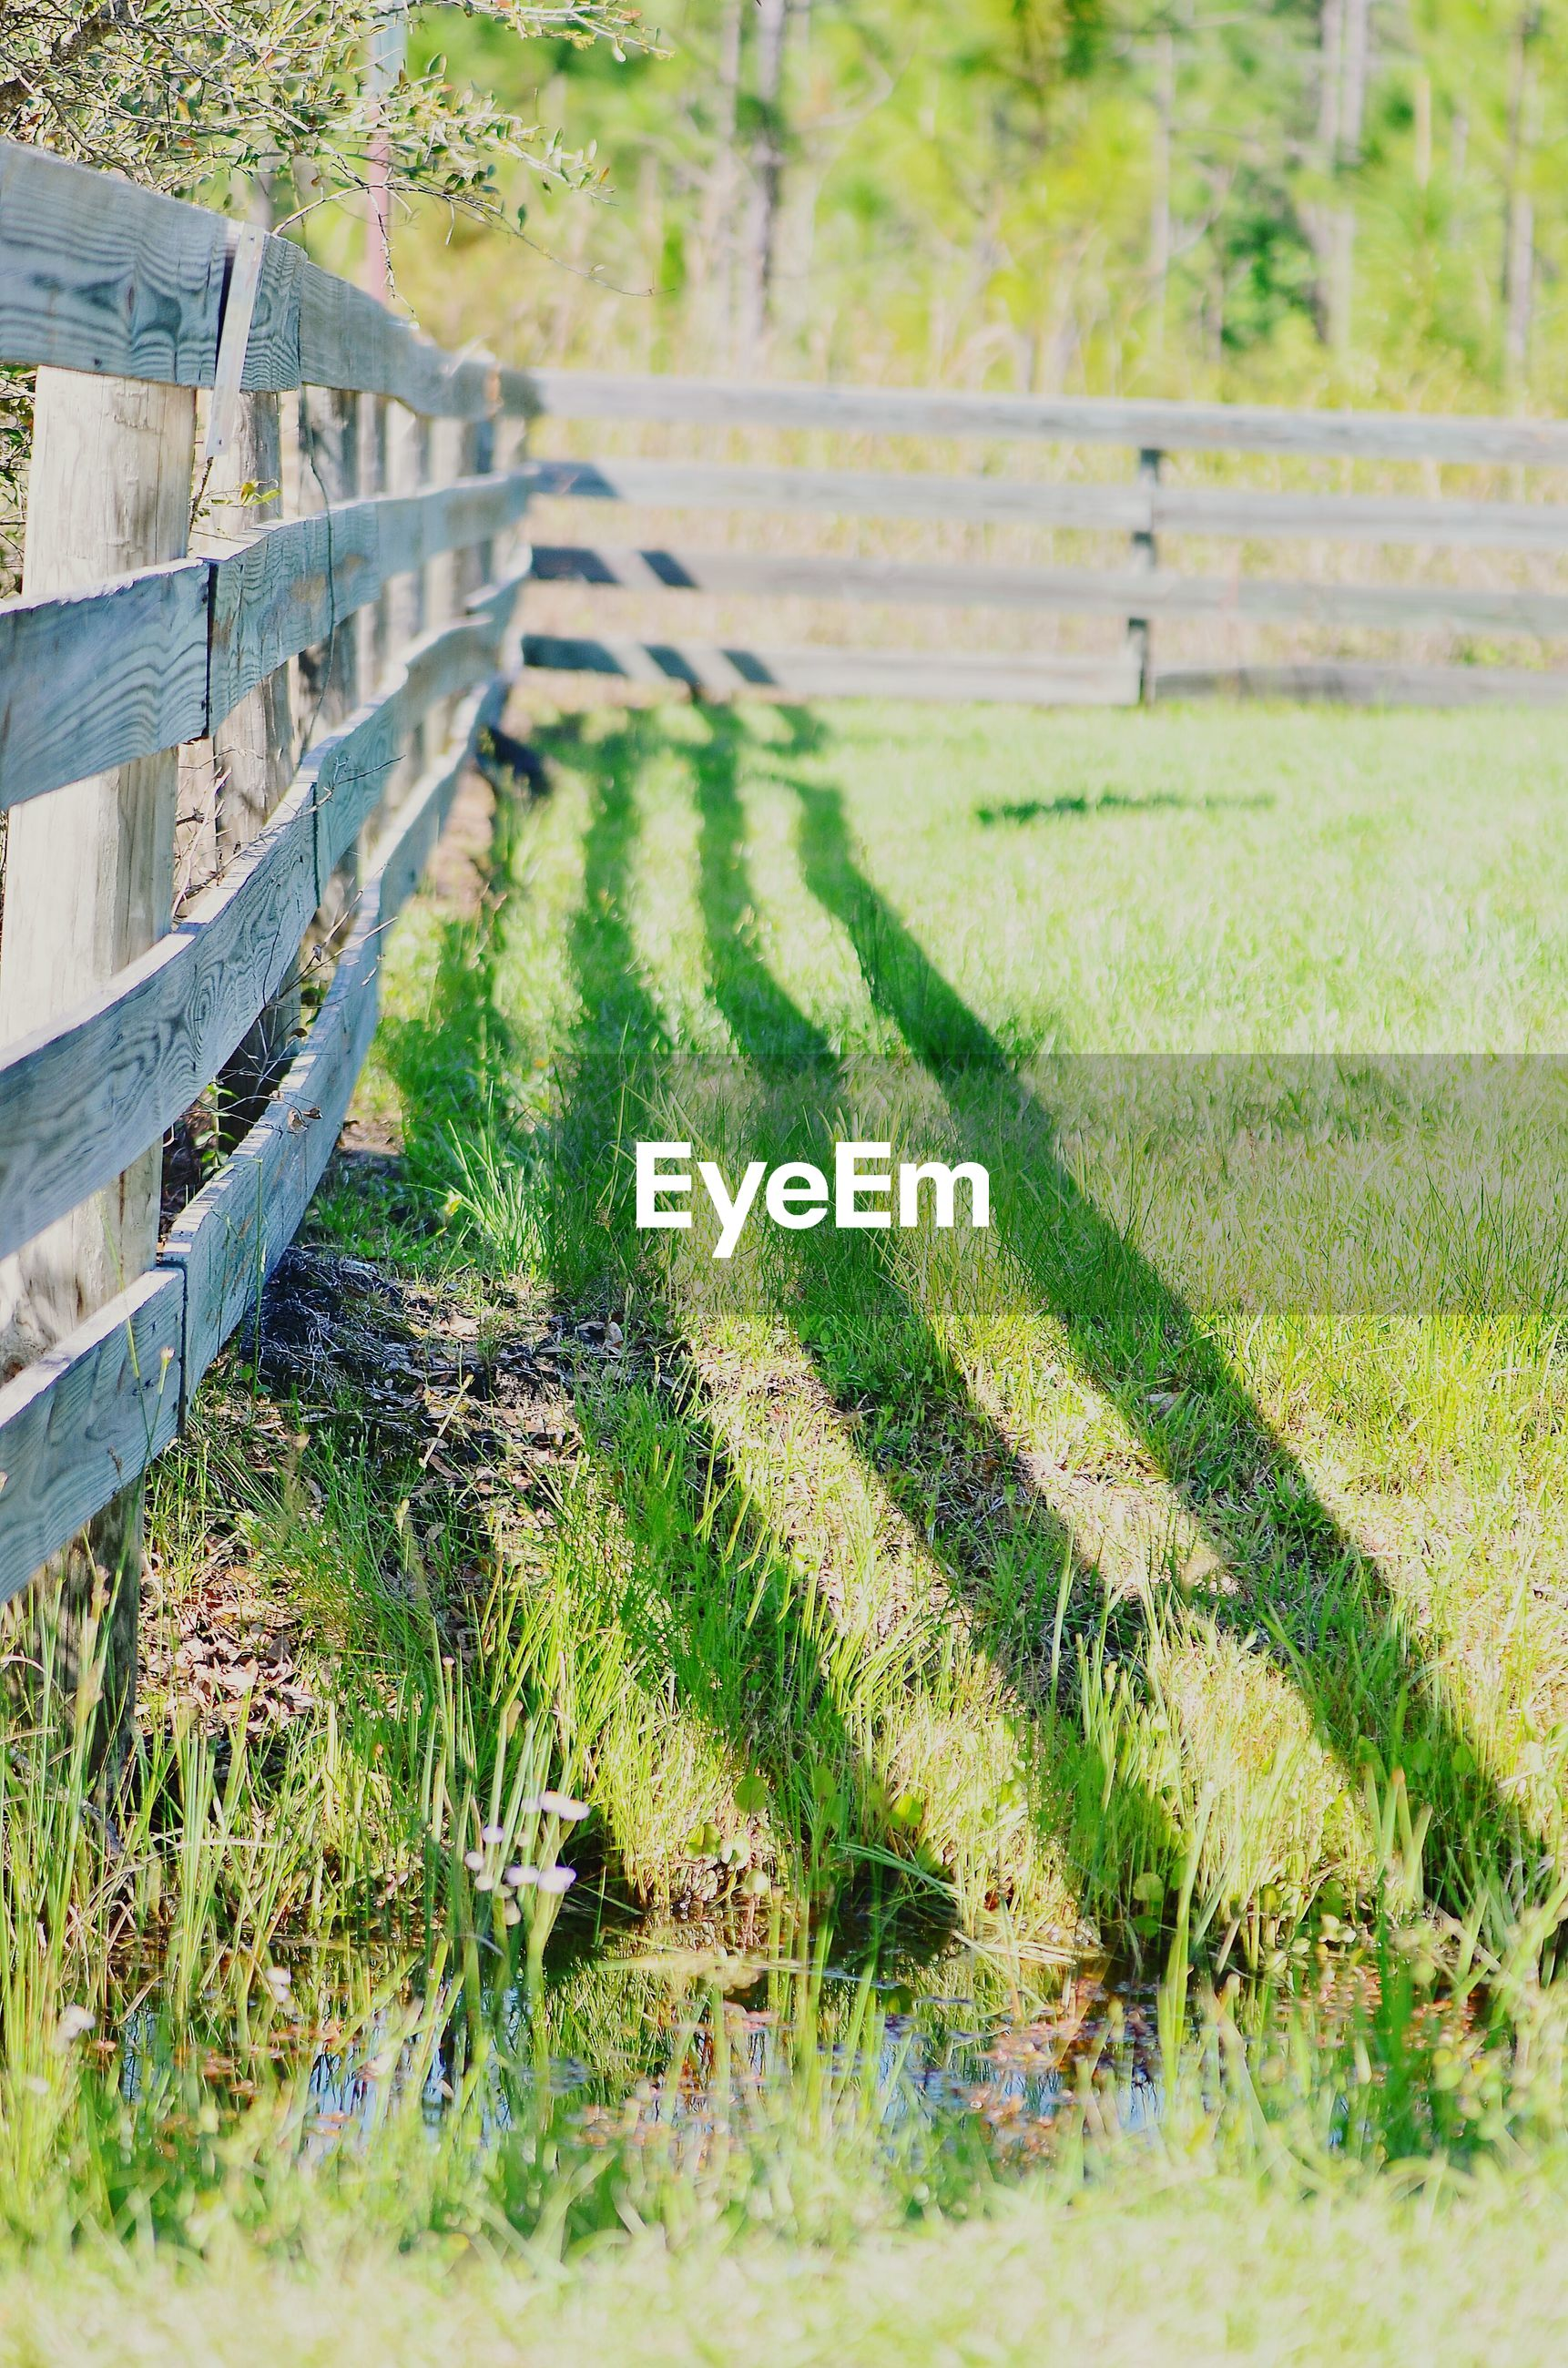 Shadow of plank fence on grass